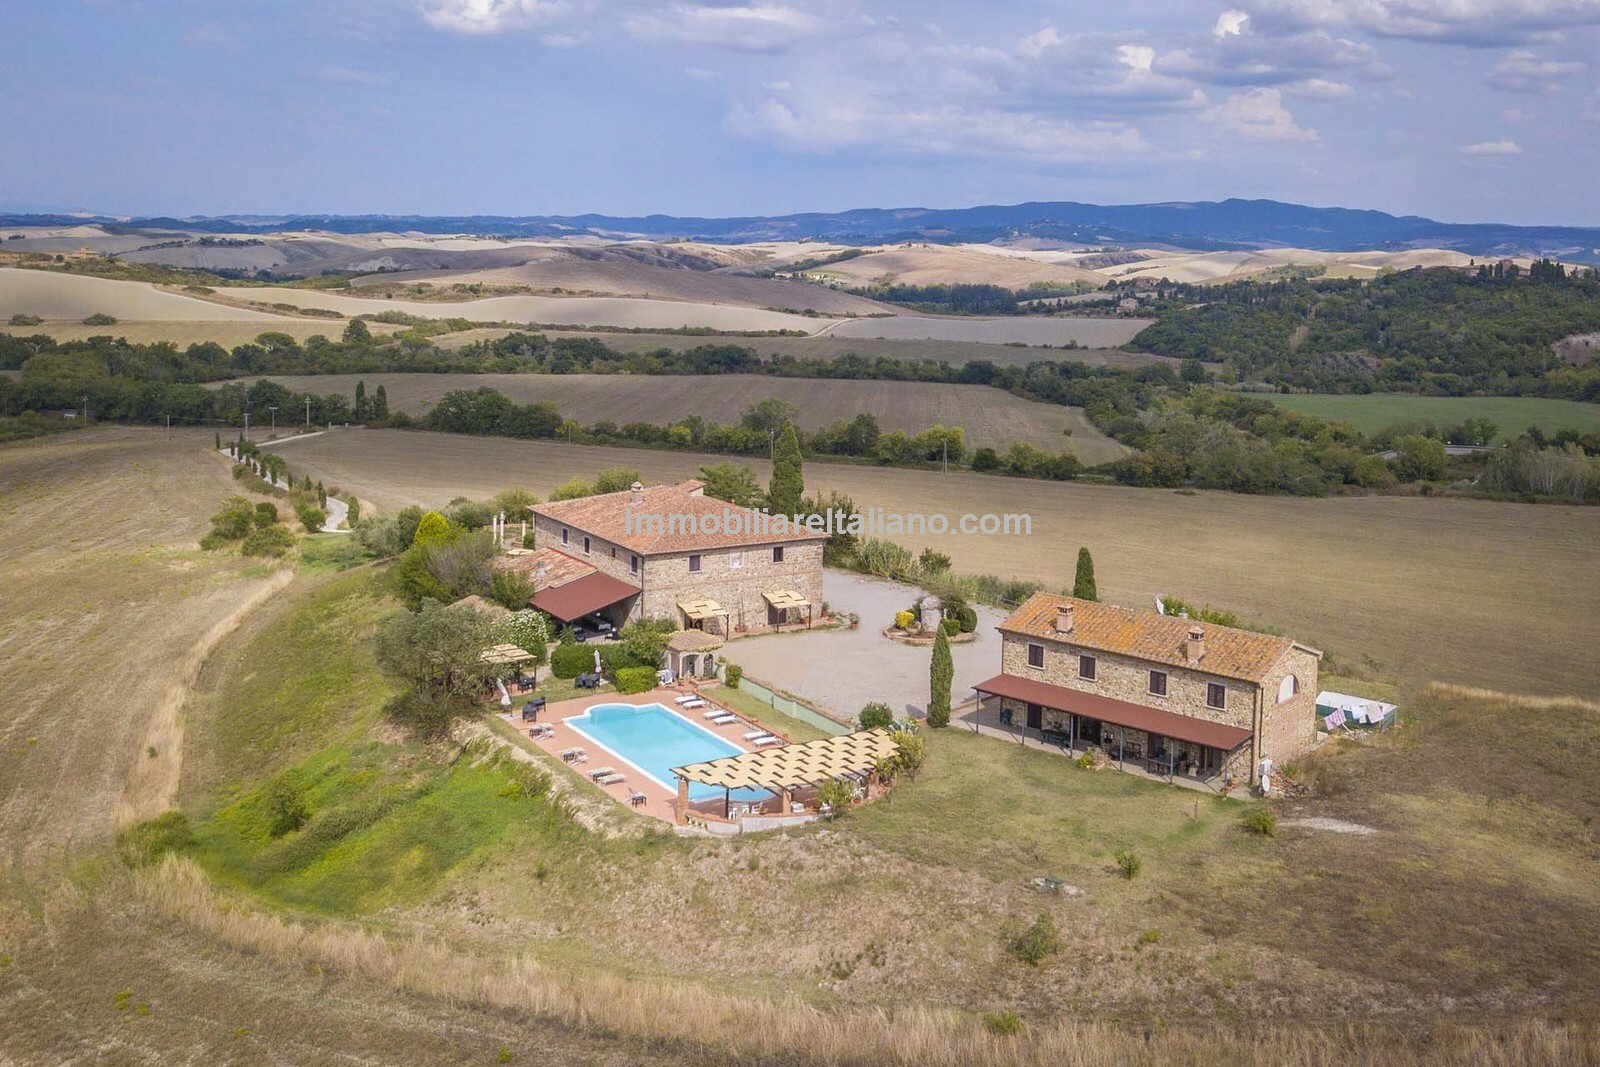 Aerial view of Tuscan farmhouse hotel